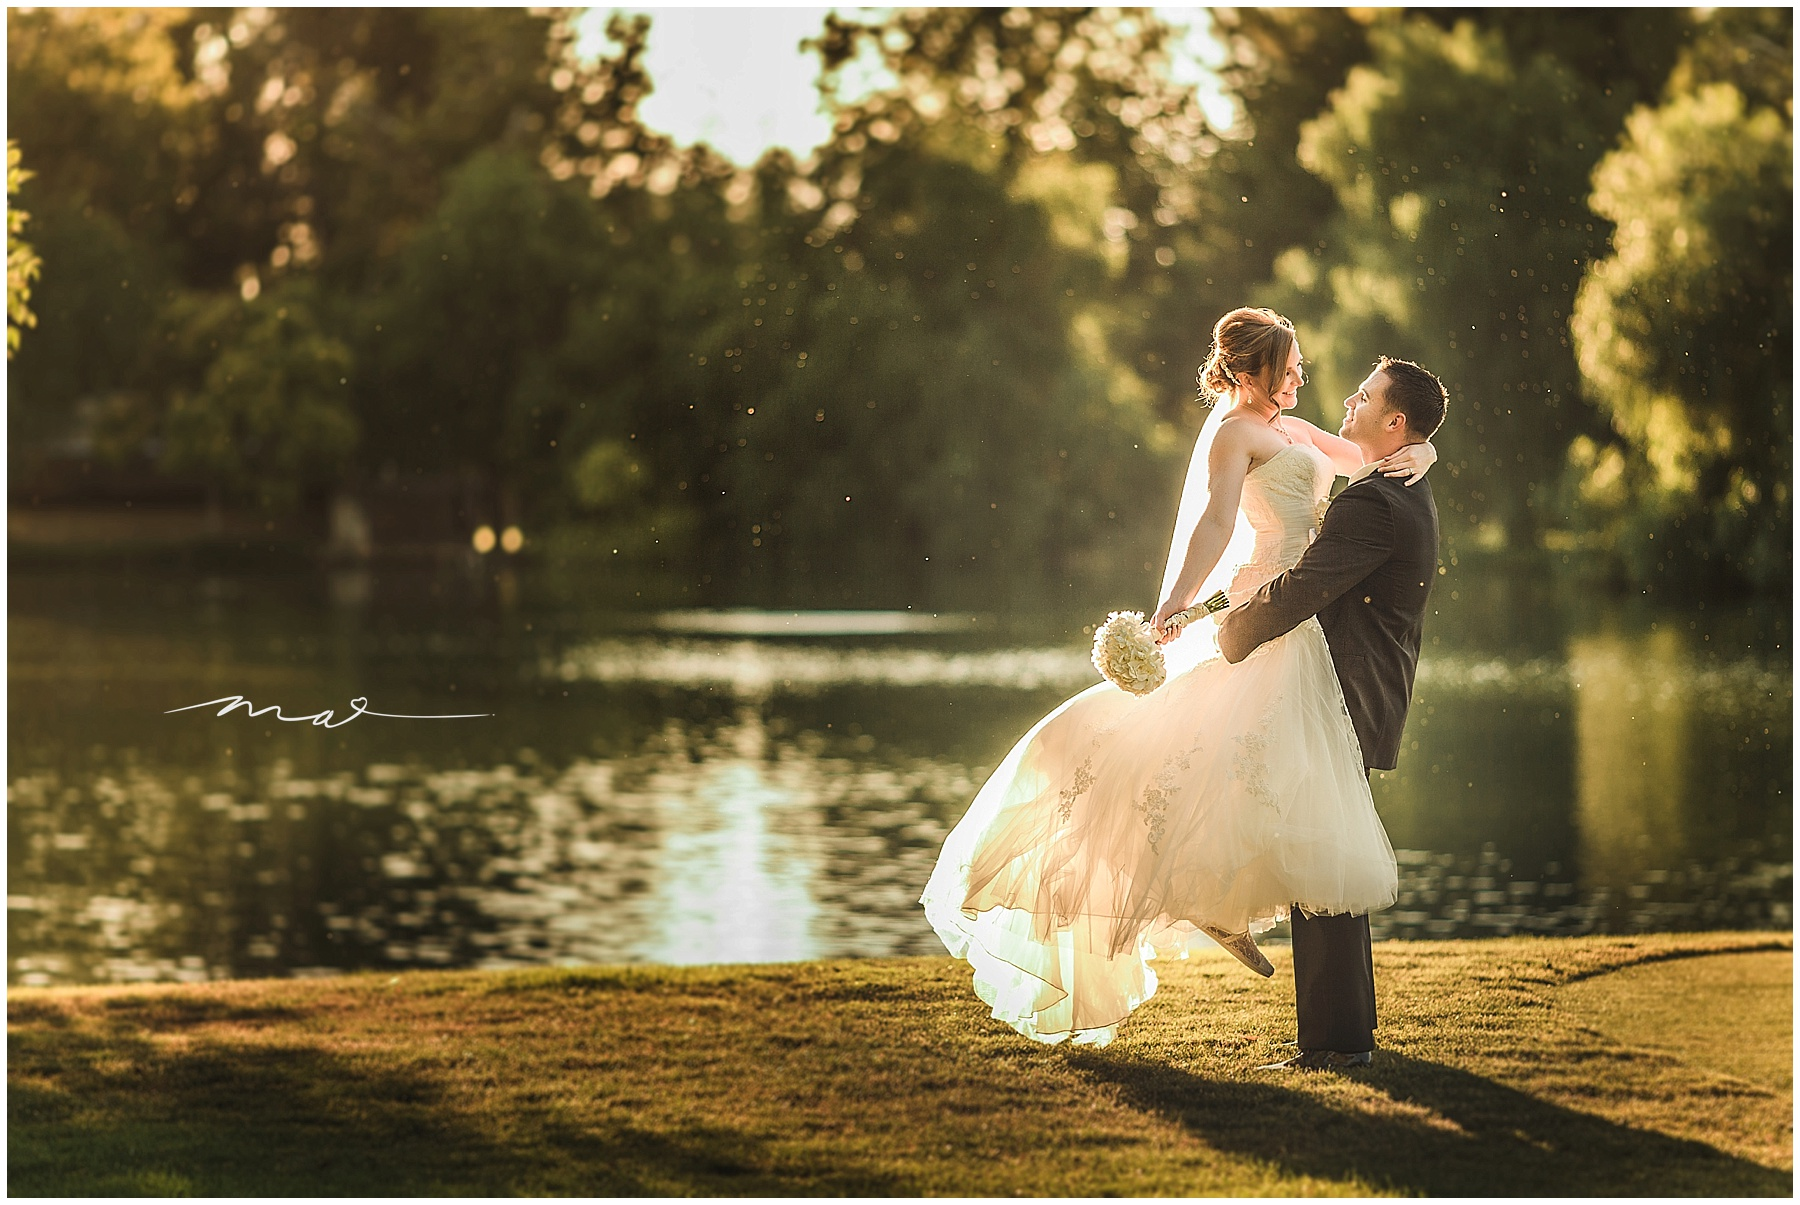 Shannon and John are a Santa Clarita couple who got married at Valencia Country Club. We were able to sneak them outside for a quick portrait session before the party during the golden hour, the time just before sunset, which is the best time of day for wedding photography